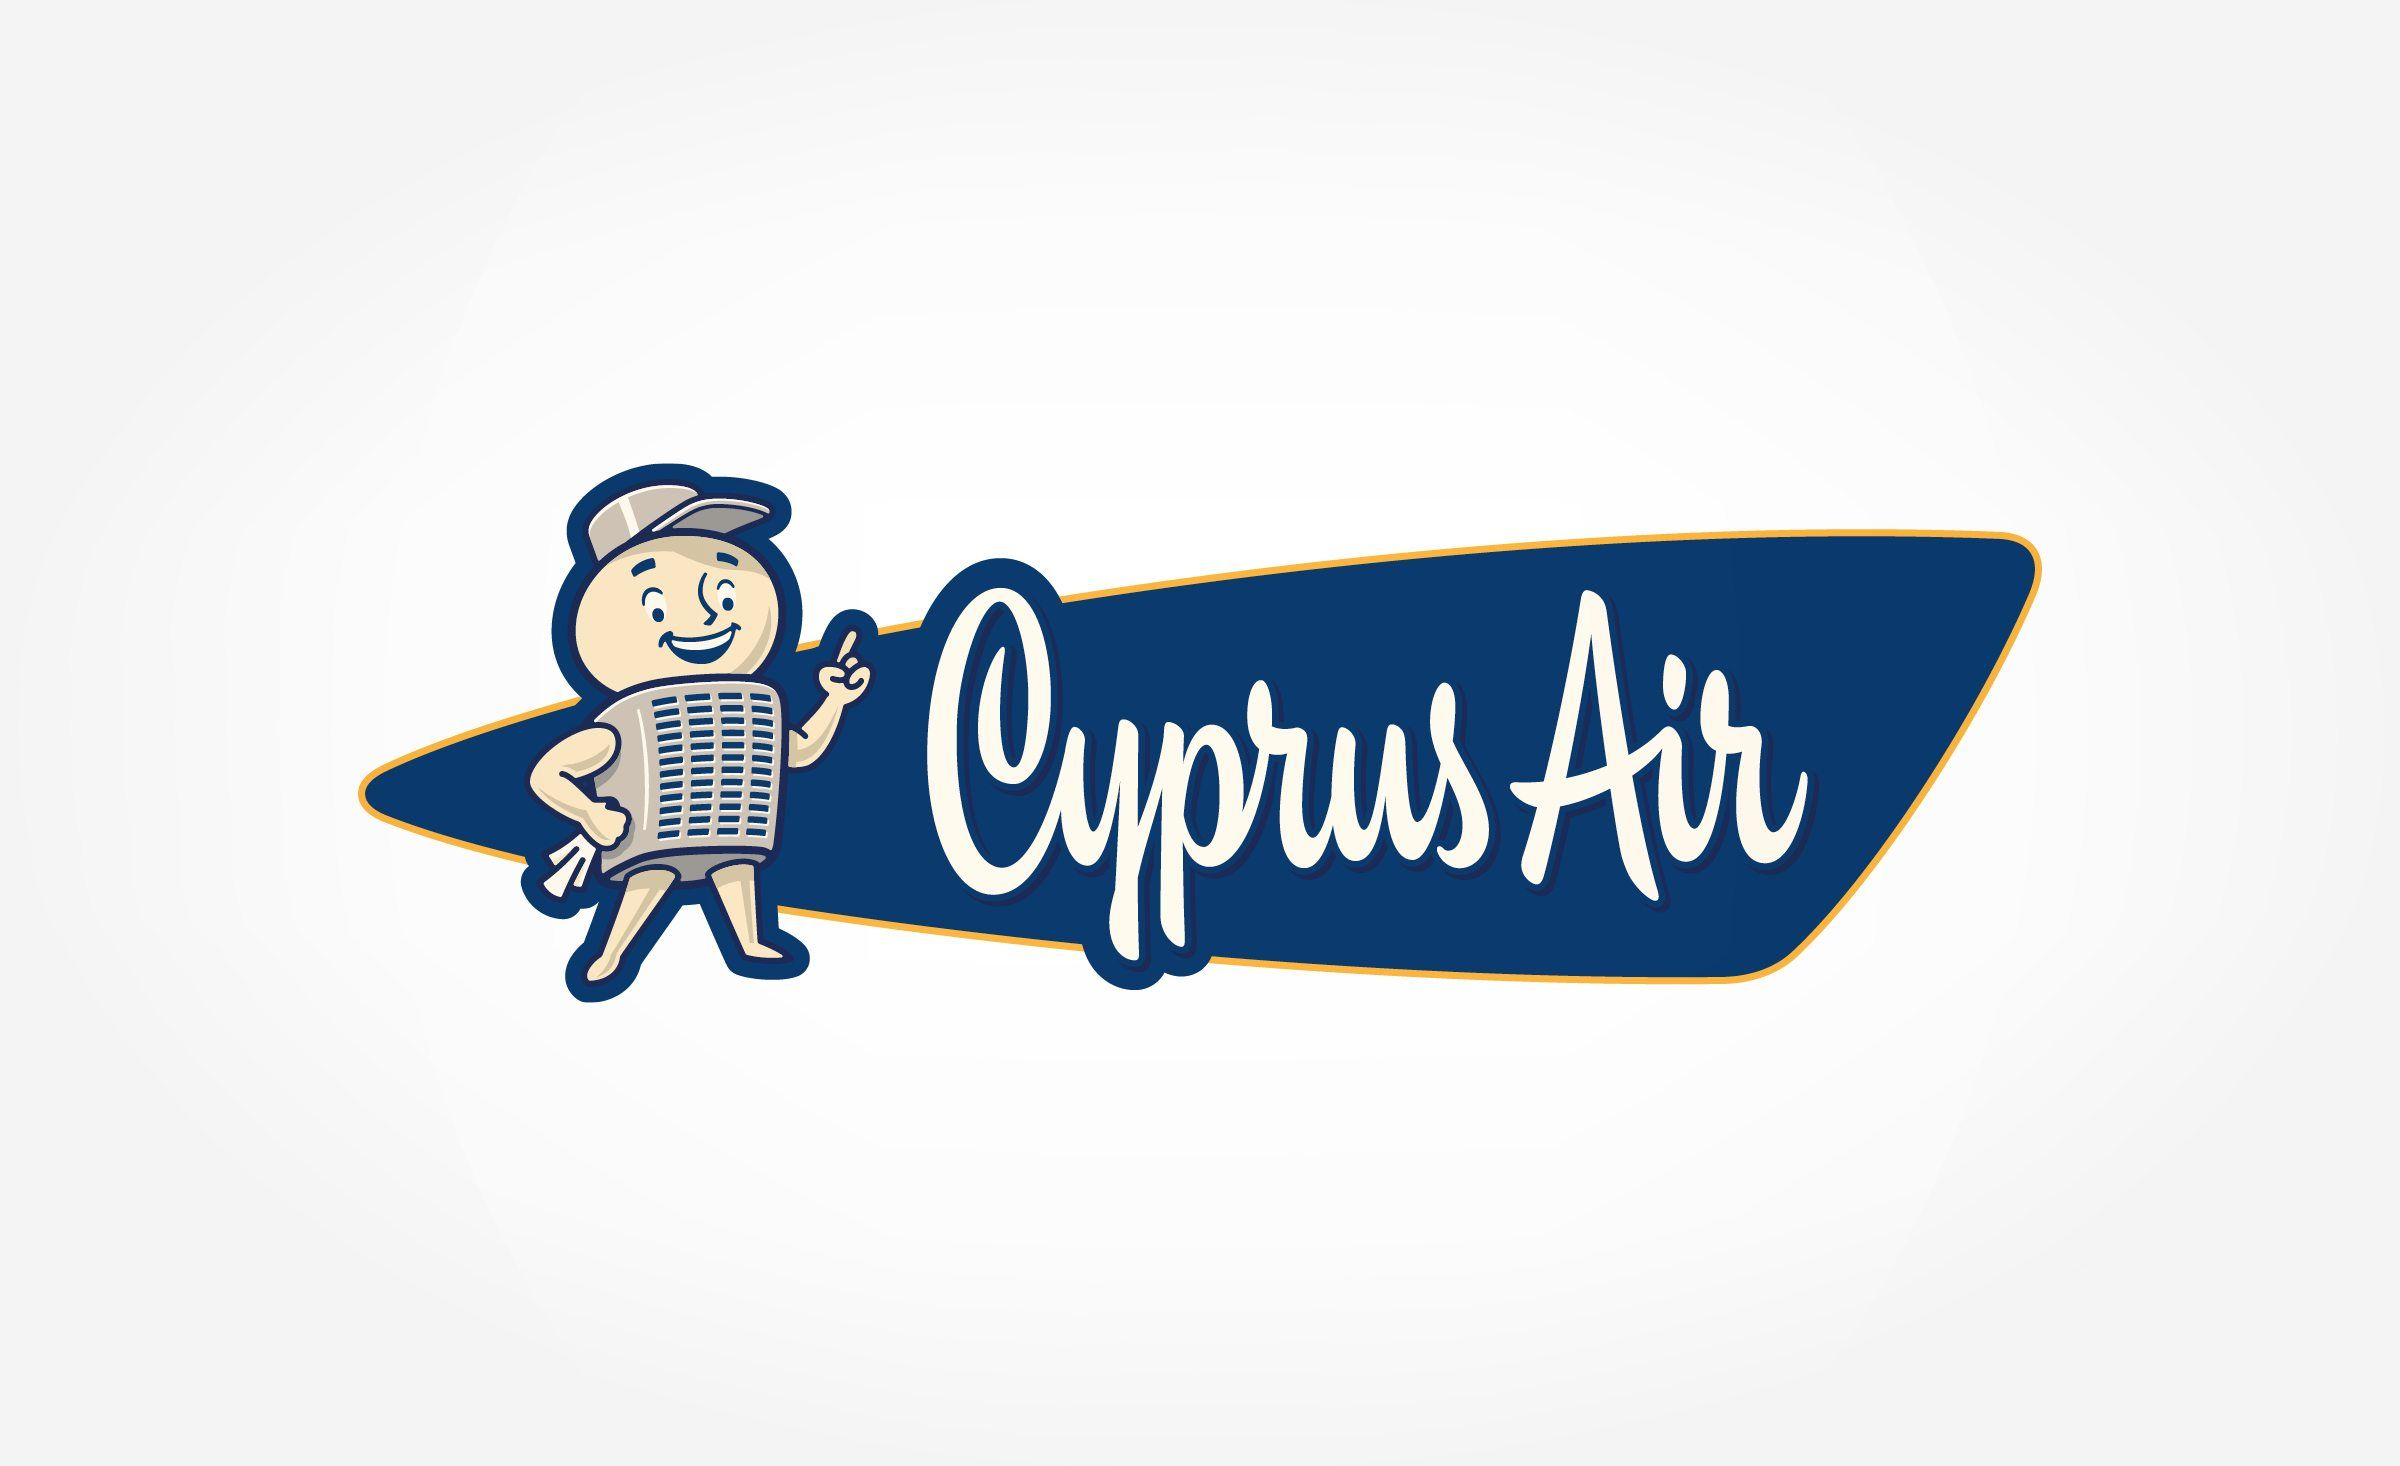 Mascot logo design for heating and air conditioning